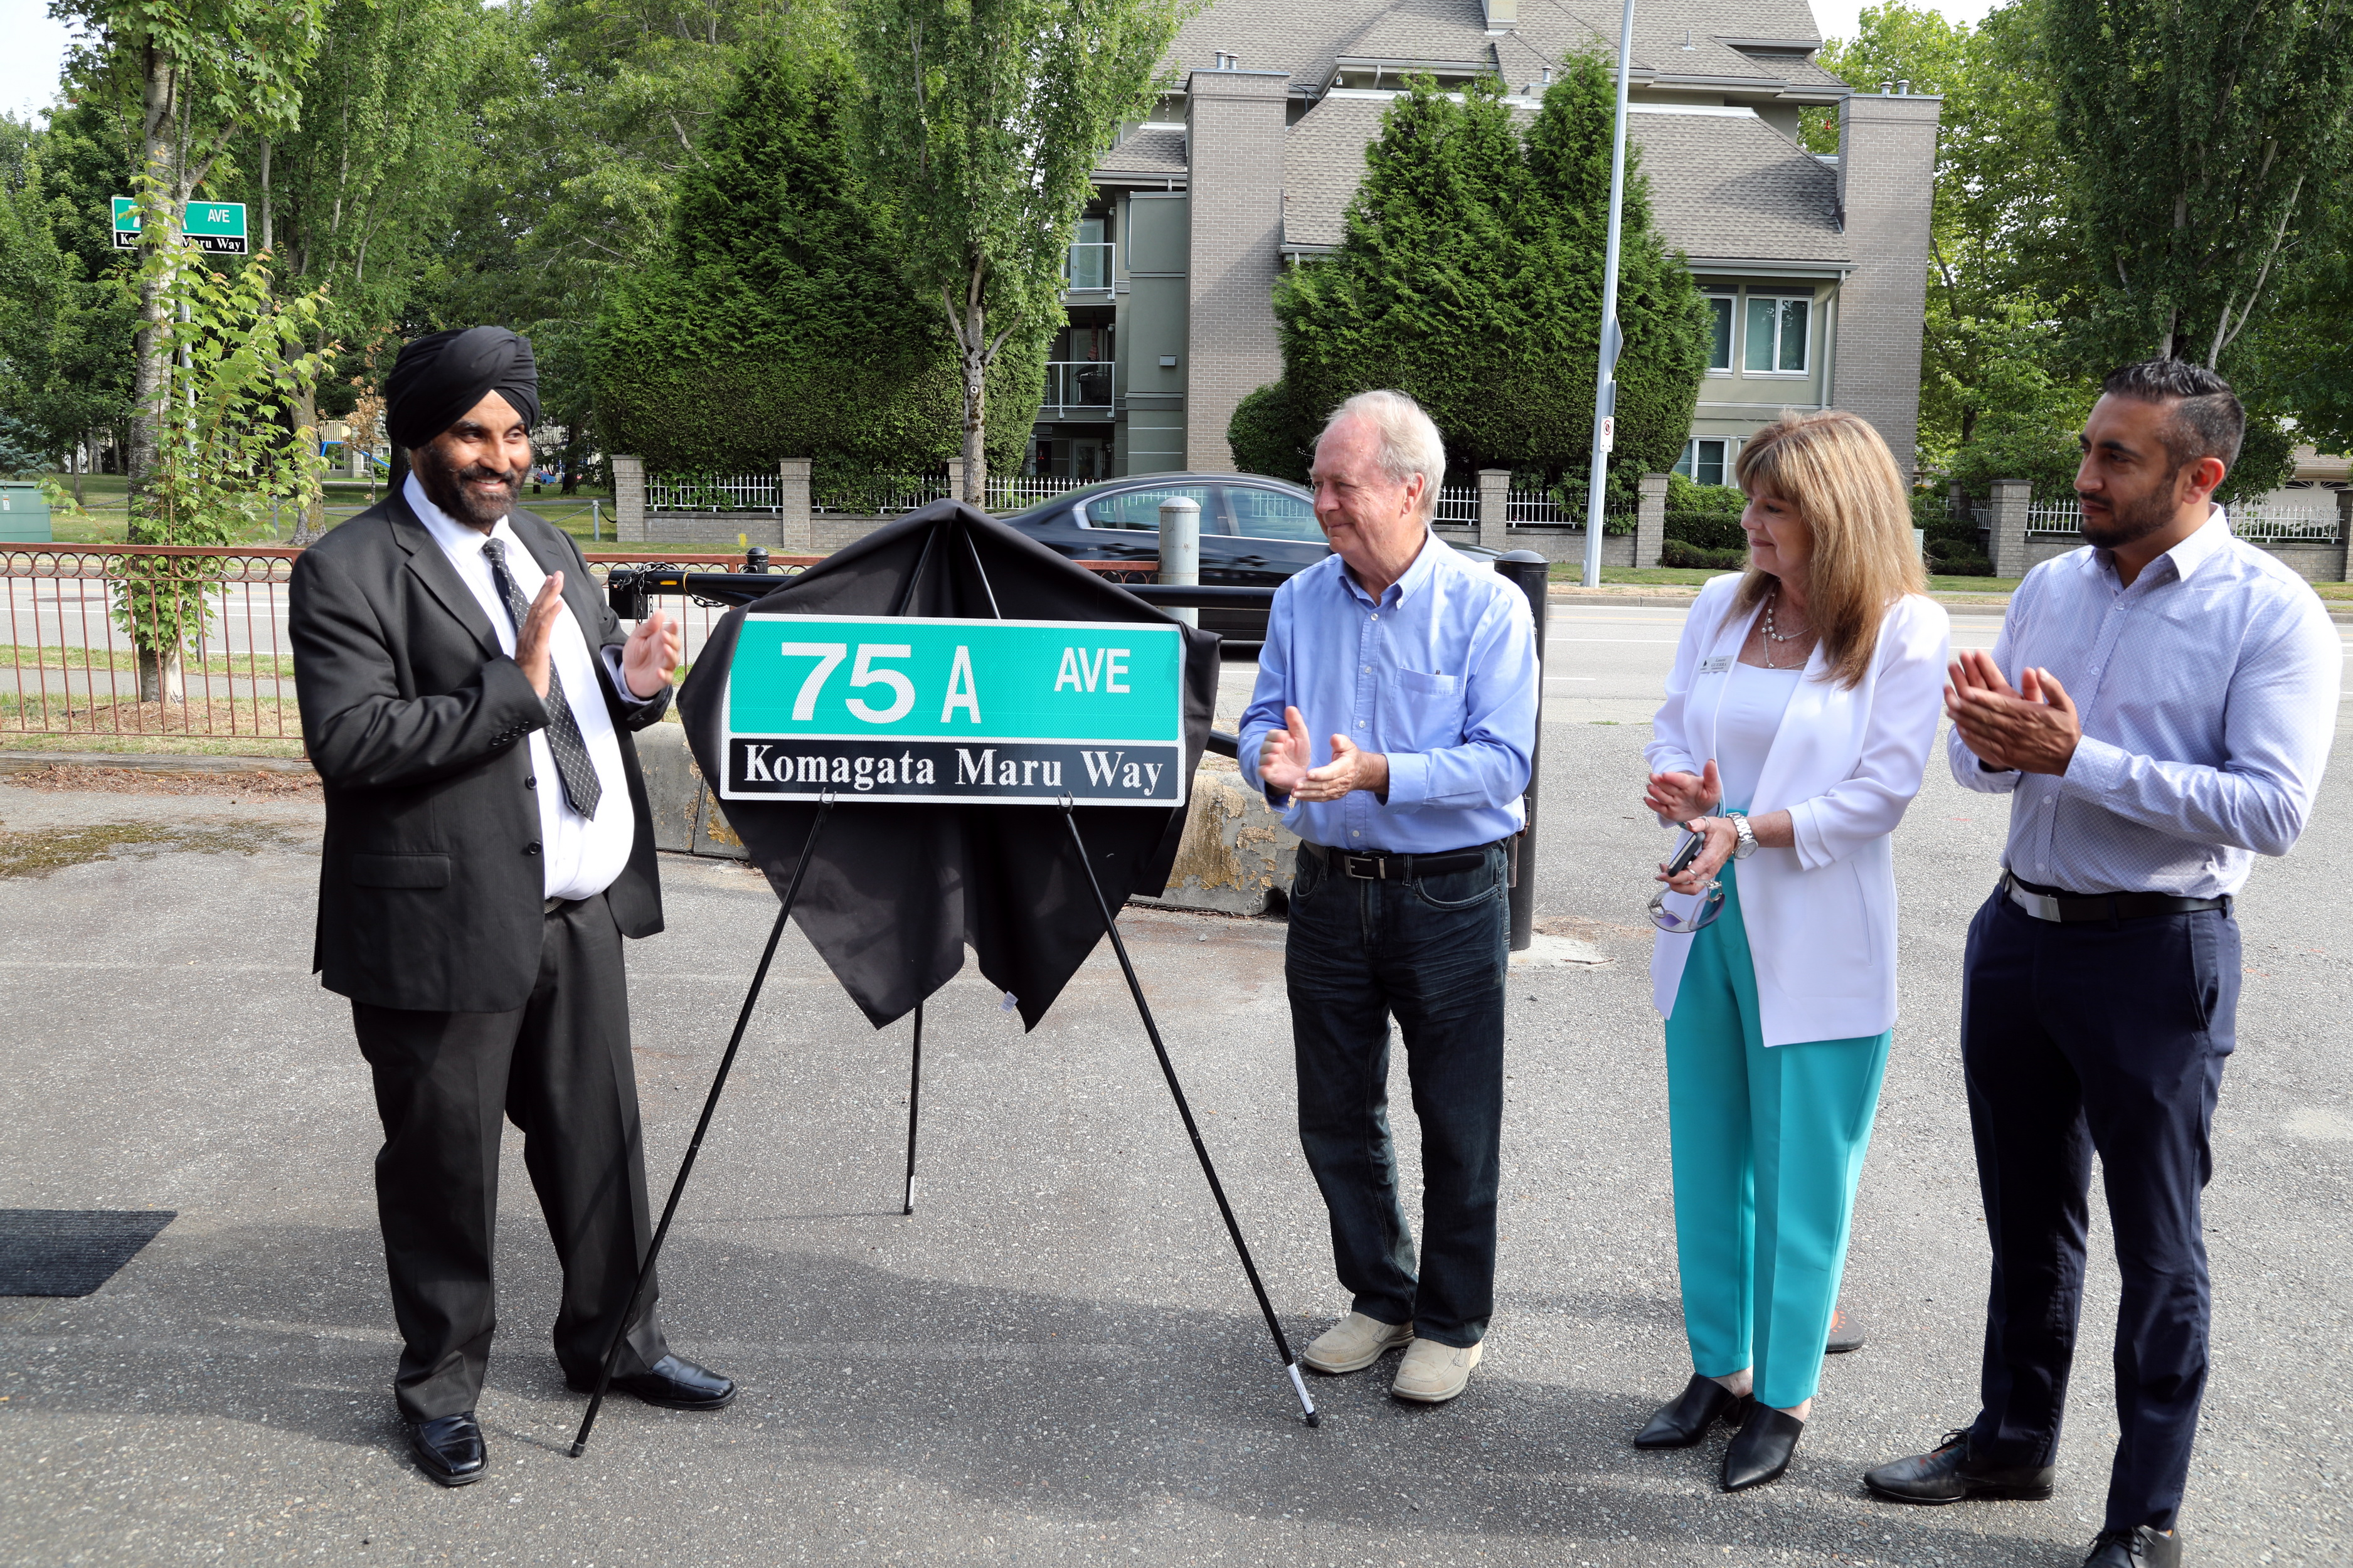 Komagata Maru Way street signs officially unveiled